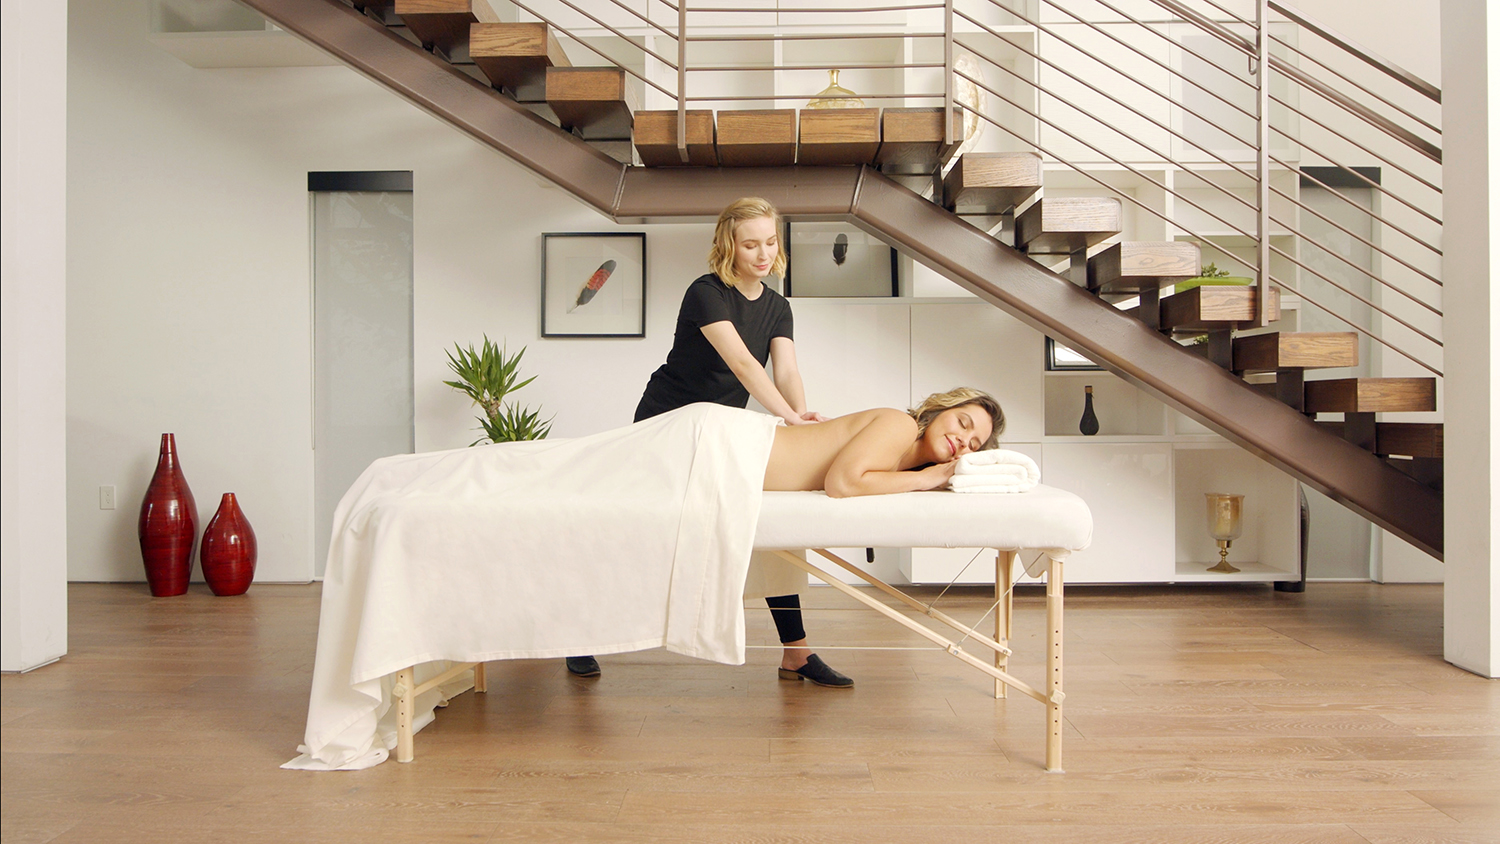 Soothe is the world's leading on-demand massage service, delivering a massage therapist to one's home or office within an hour.